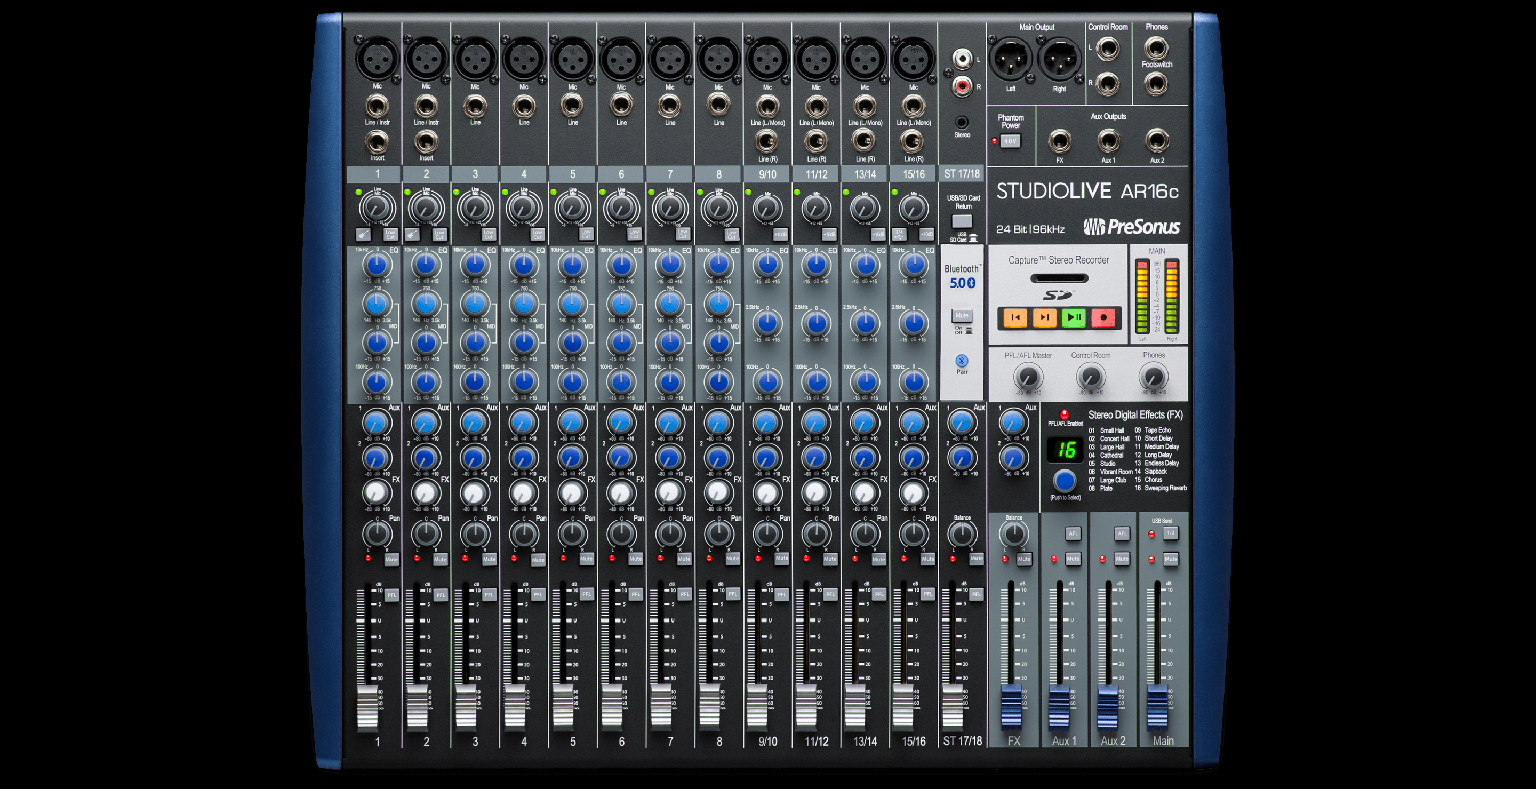 StudioLive AR16c (shown) delivers 12 mic preamps and 16 balanced line inputs for 18x4 recording/playback